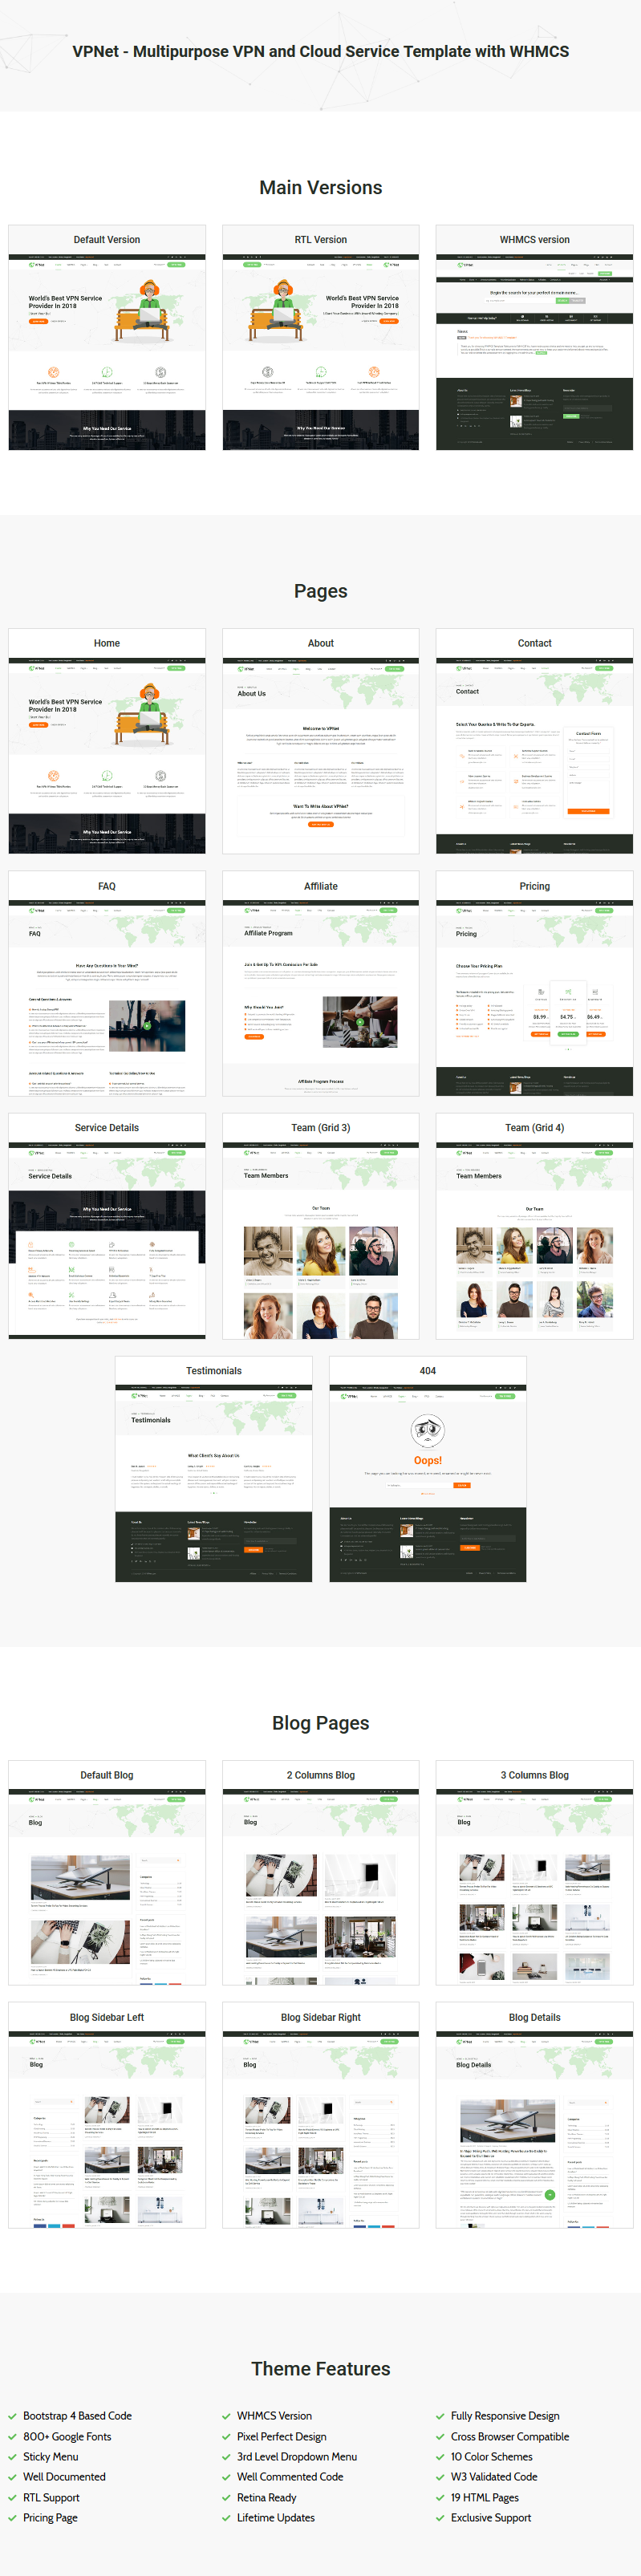 VPNet - Multipurpose VPN and Cloud Service Template with WHMCS by ...